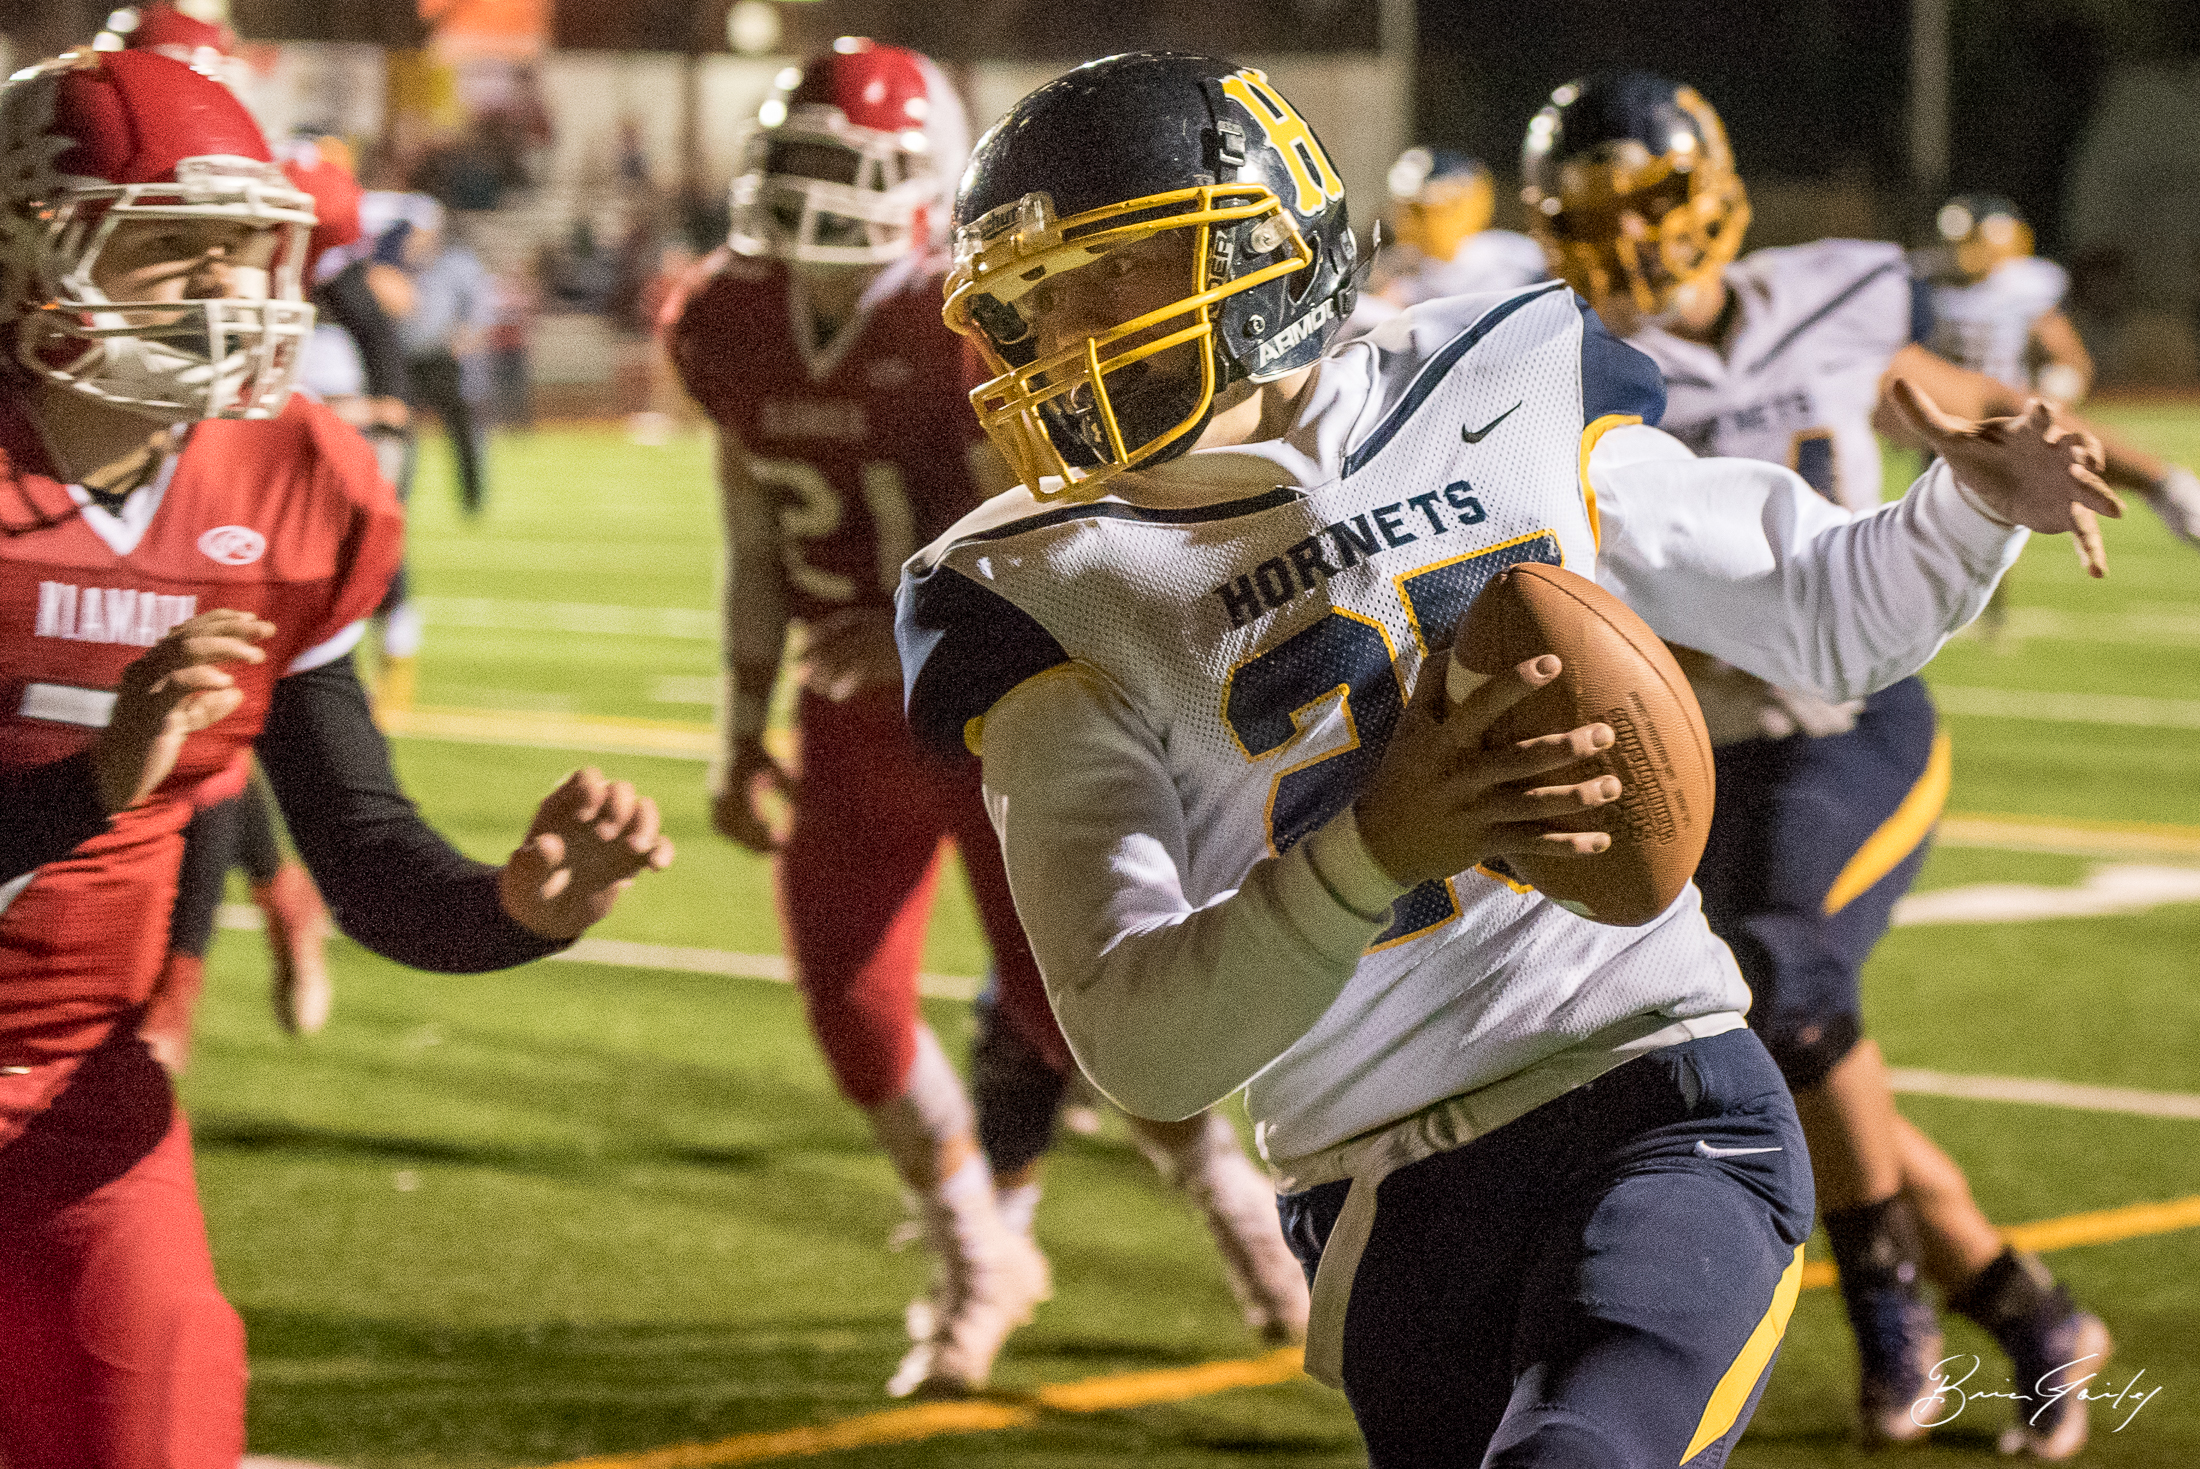 O'Connor is in for the TD. This is one of several touchdowns racked up by Henley against Klamath Union tonight.